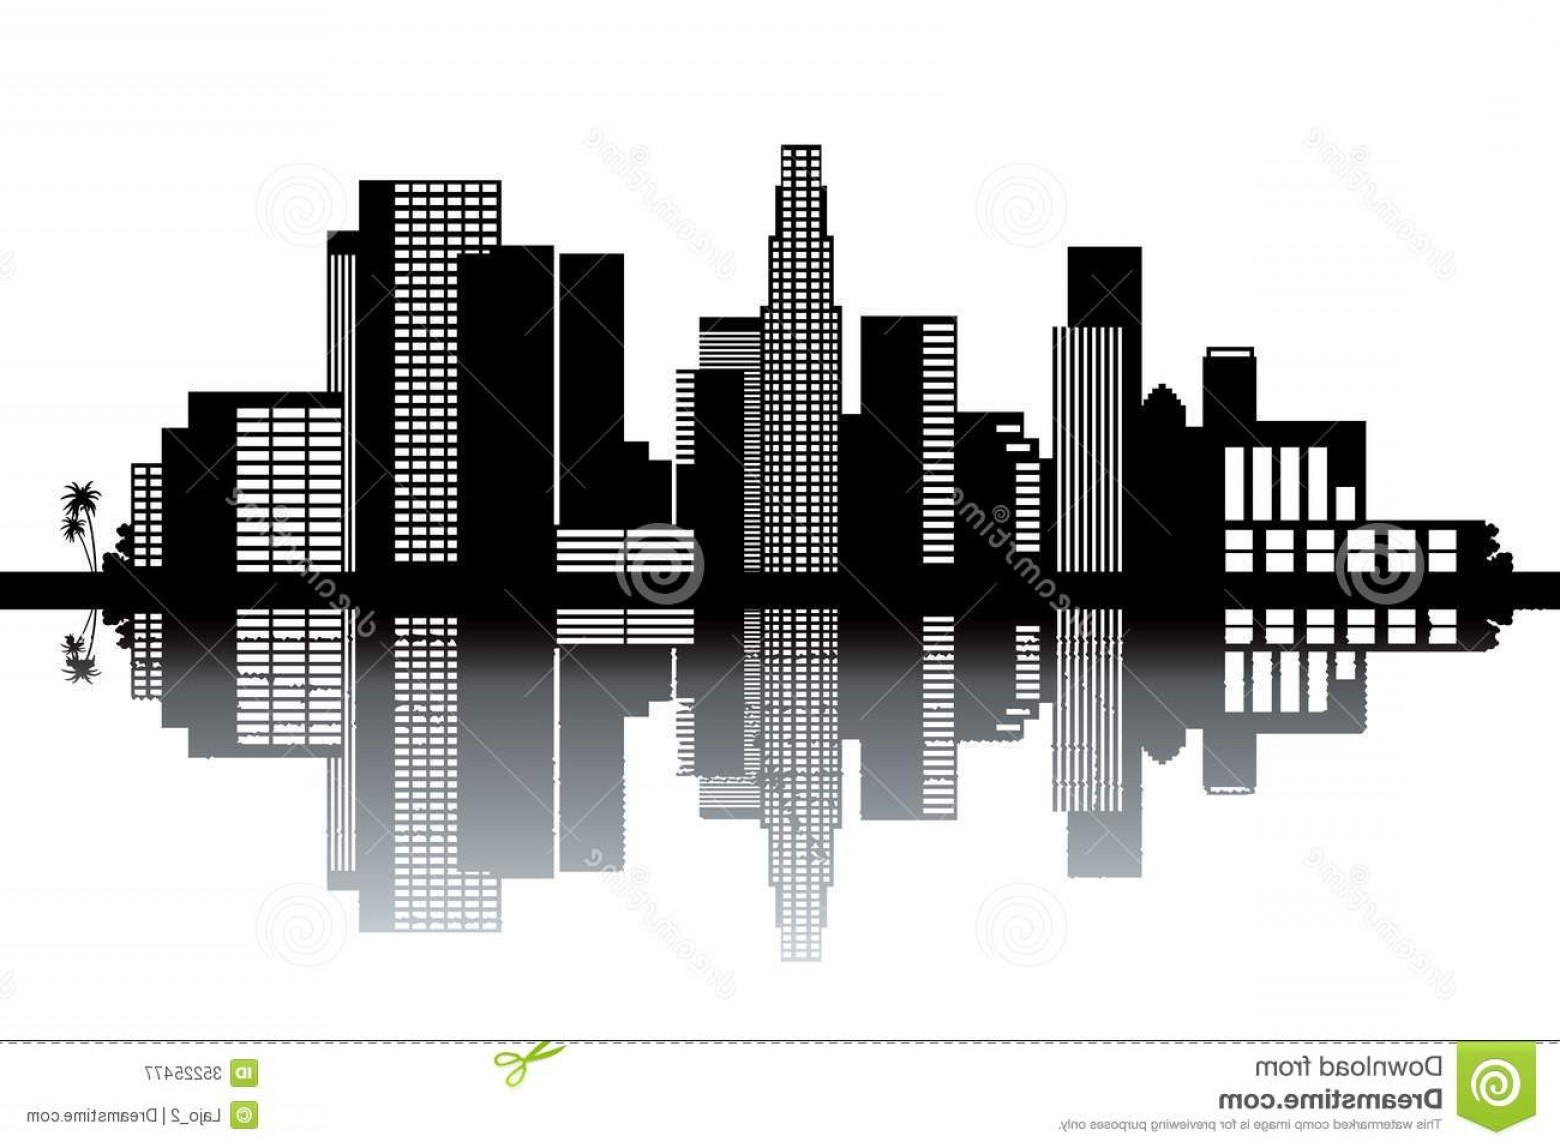 Hollywood Skyline Silhouette Vector: Royalty Free Stock Photography Los Angeles Skyline Black White Vector Illustration Image